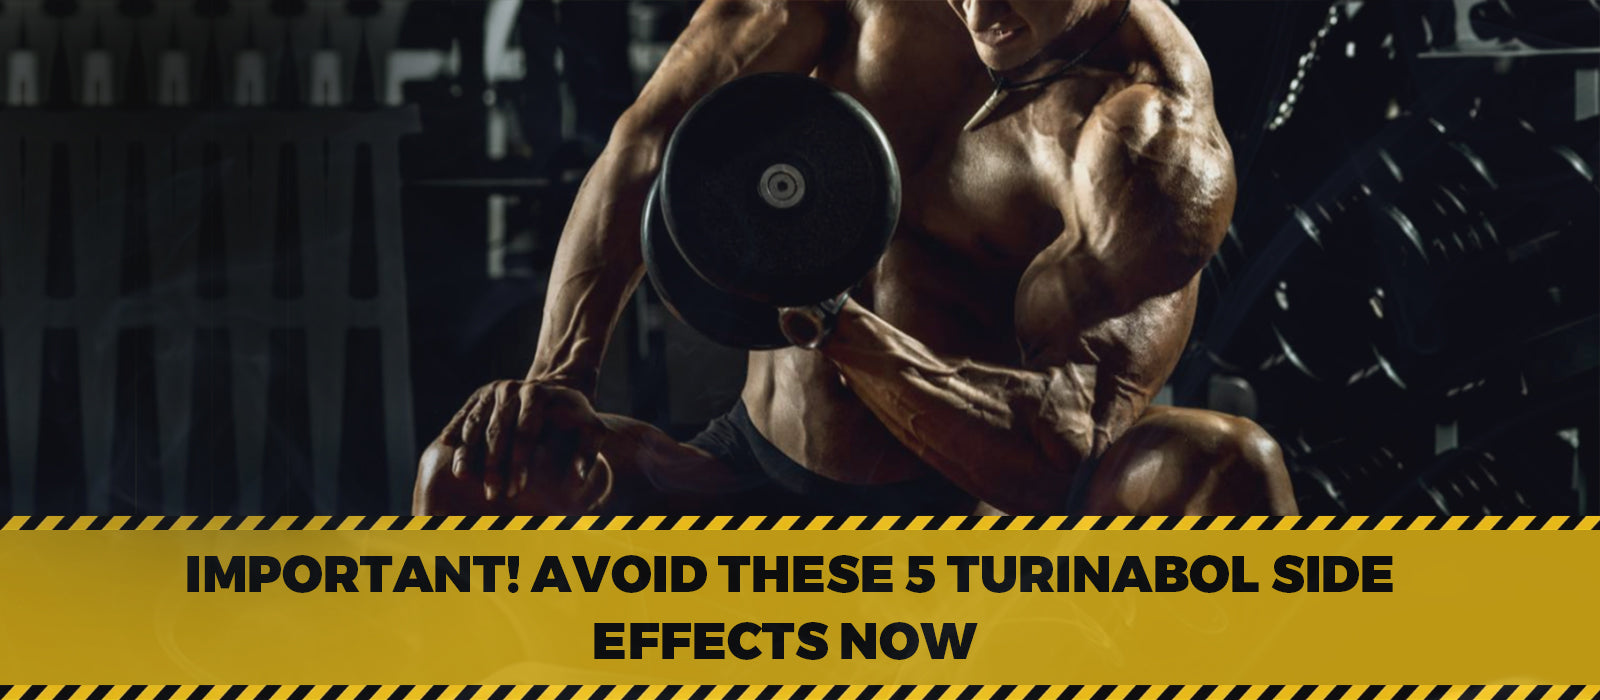 Important! Avoid These 5 Turinabol Side Effects Now